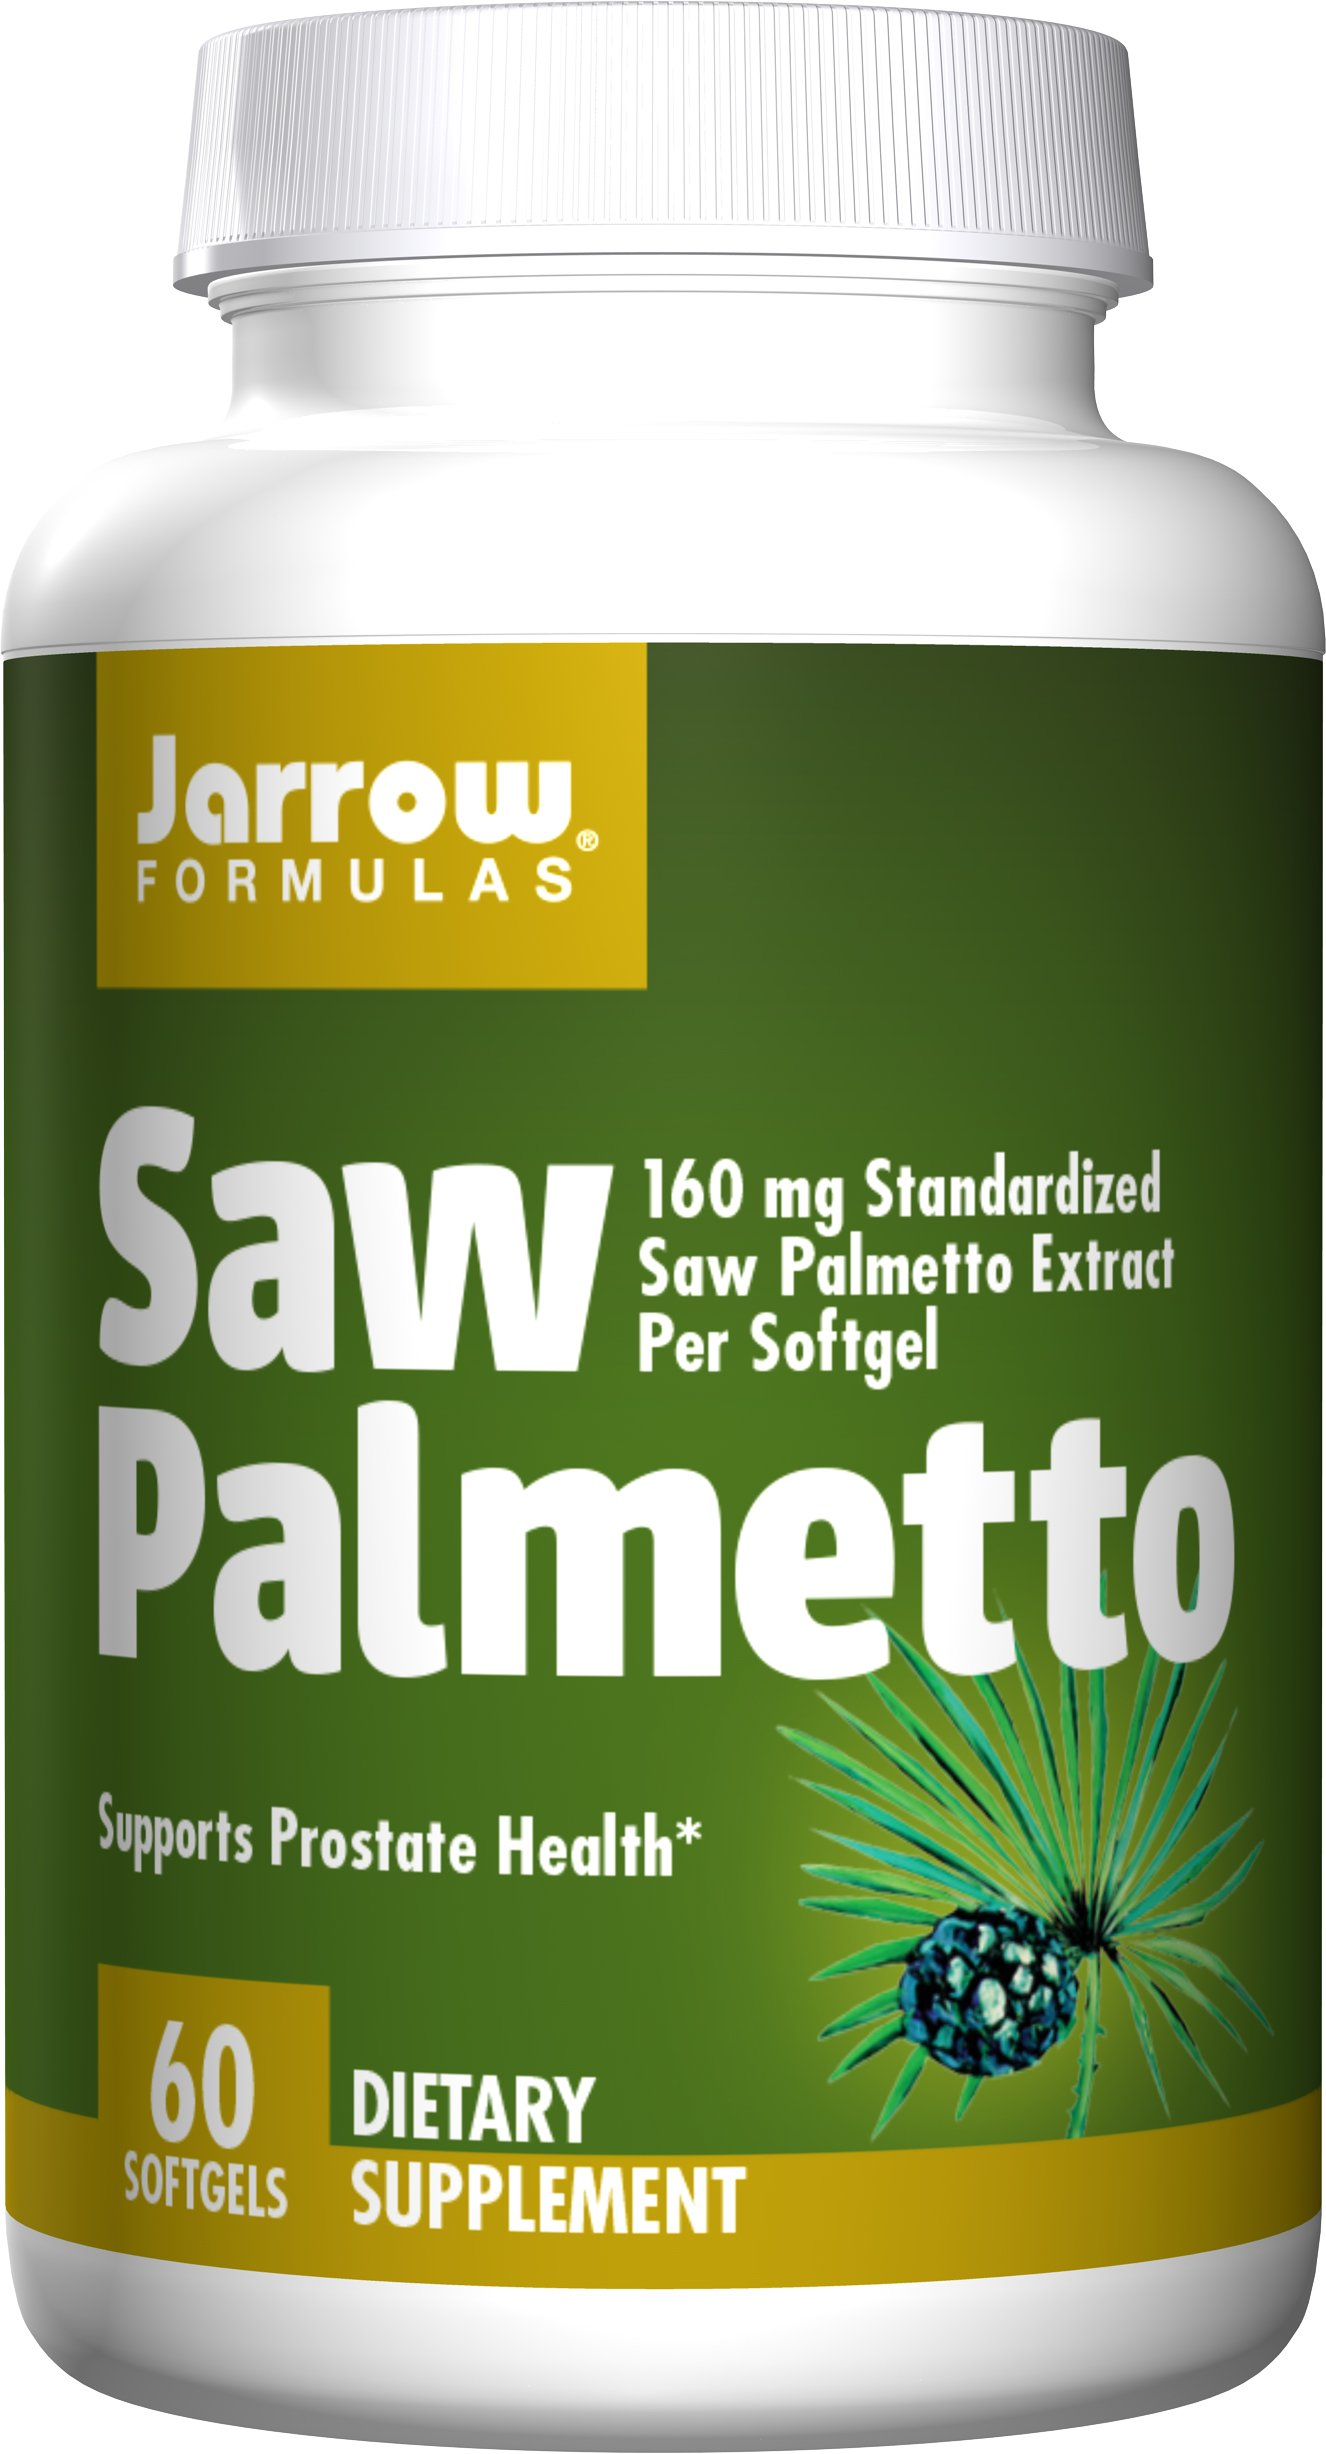 Jarrow Formulas Saw Palmetto, For Prostate Health, 60 Softgels (Pack of 2)